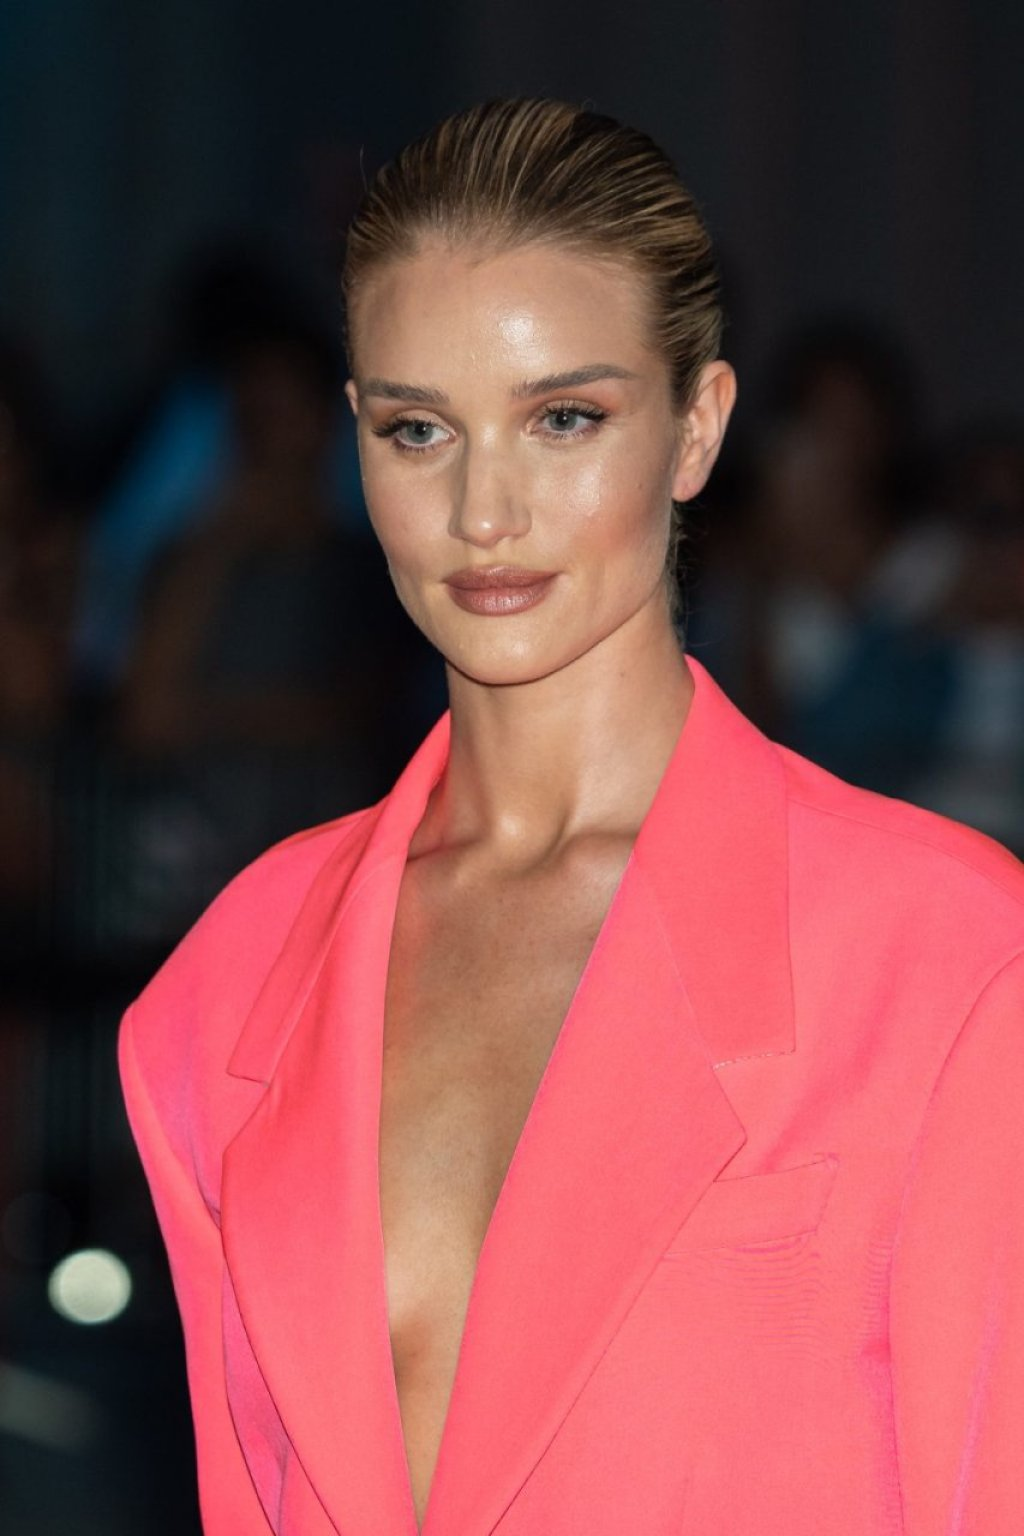 Rosie Huntington-Whiteley Braless (25 Photos)